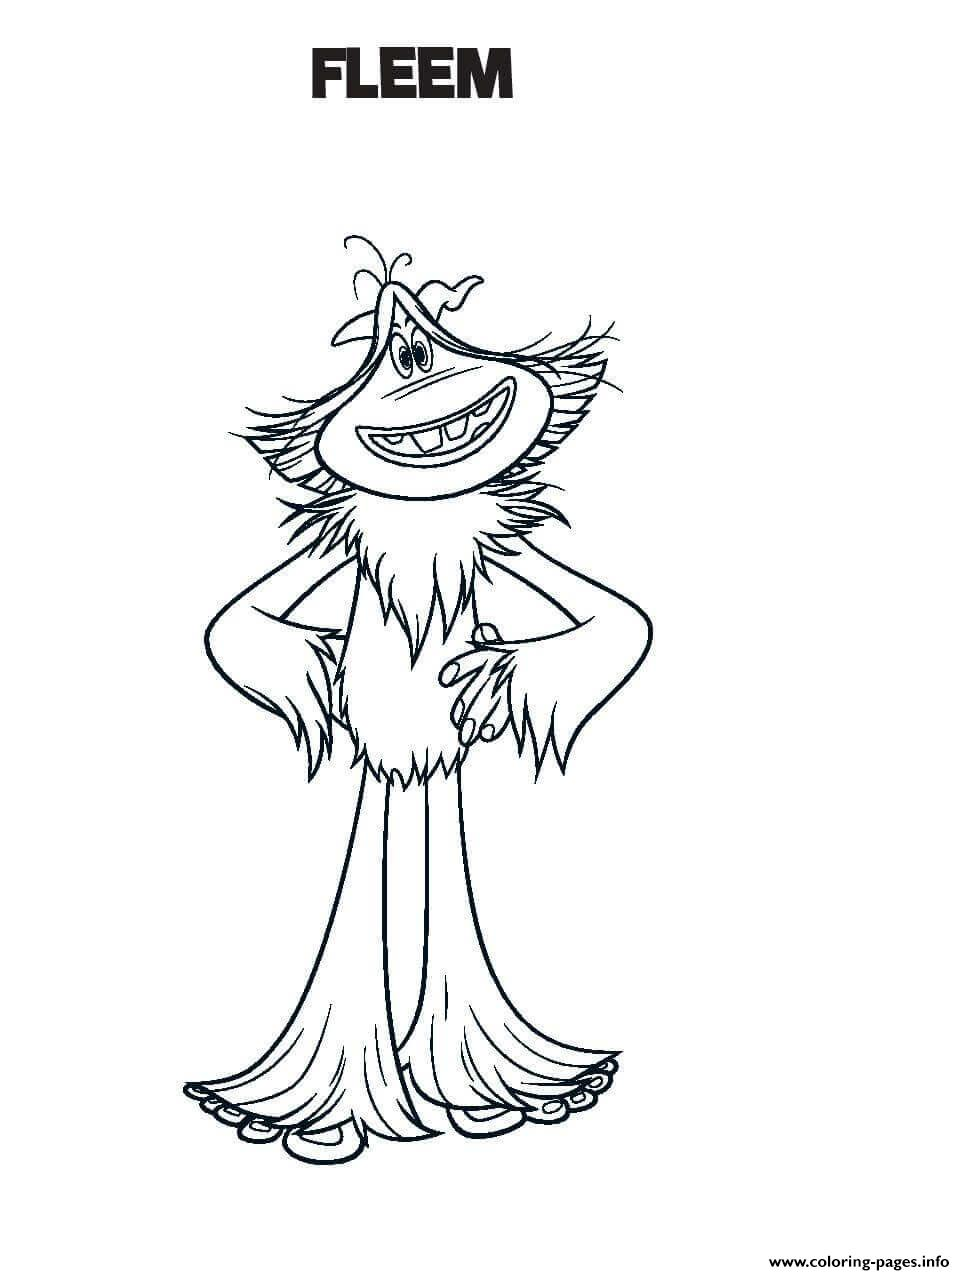 Smallfoot Fleem Coloring Pages Printable